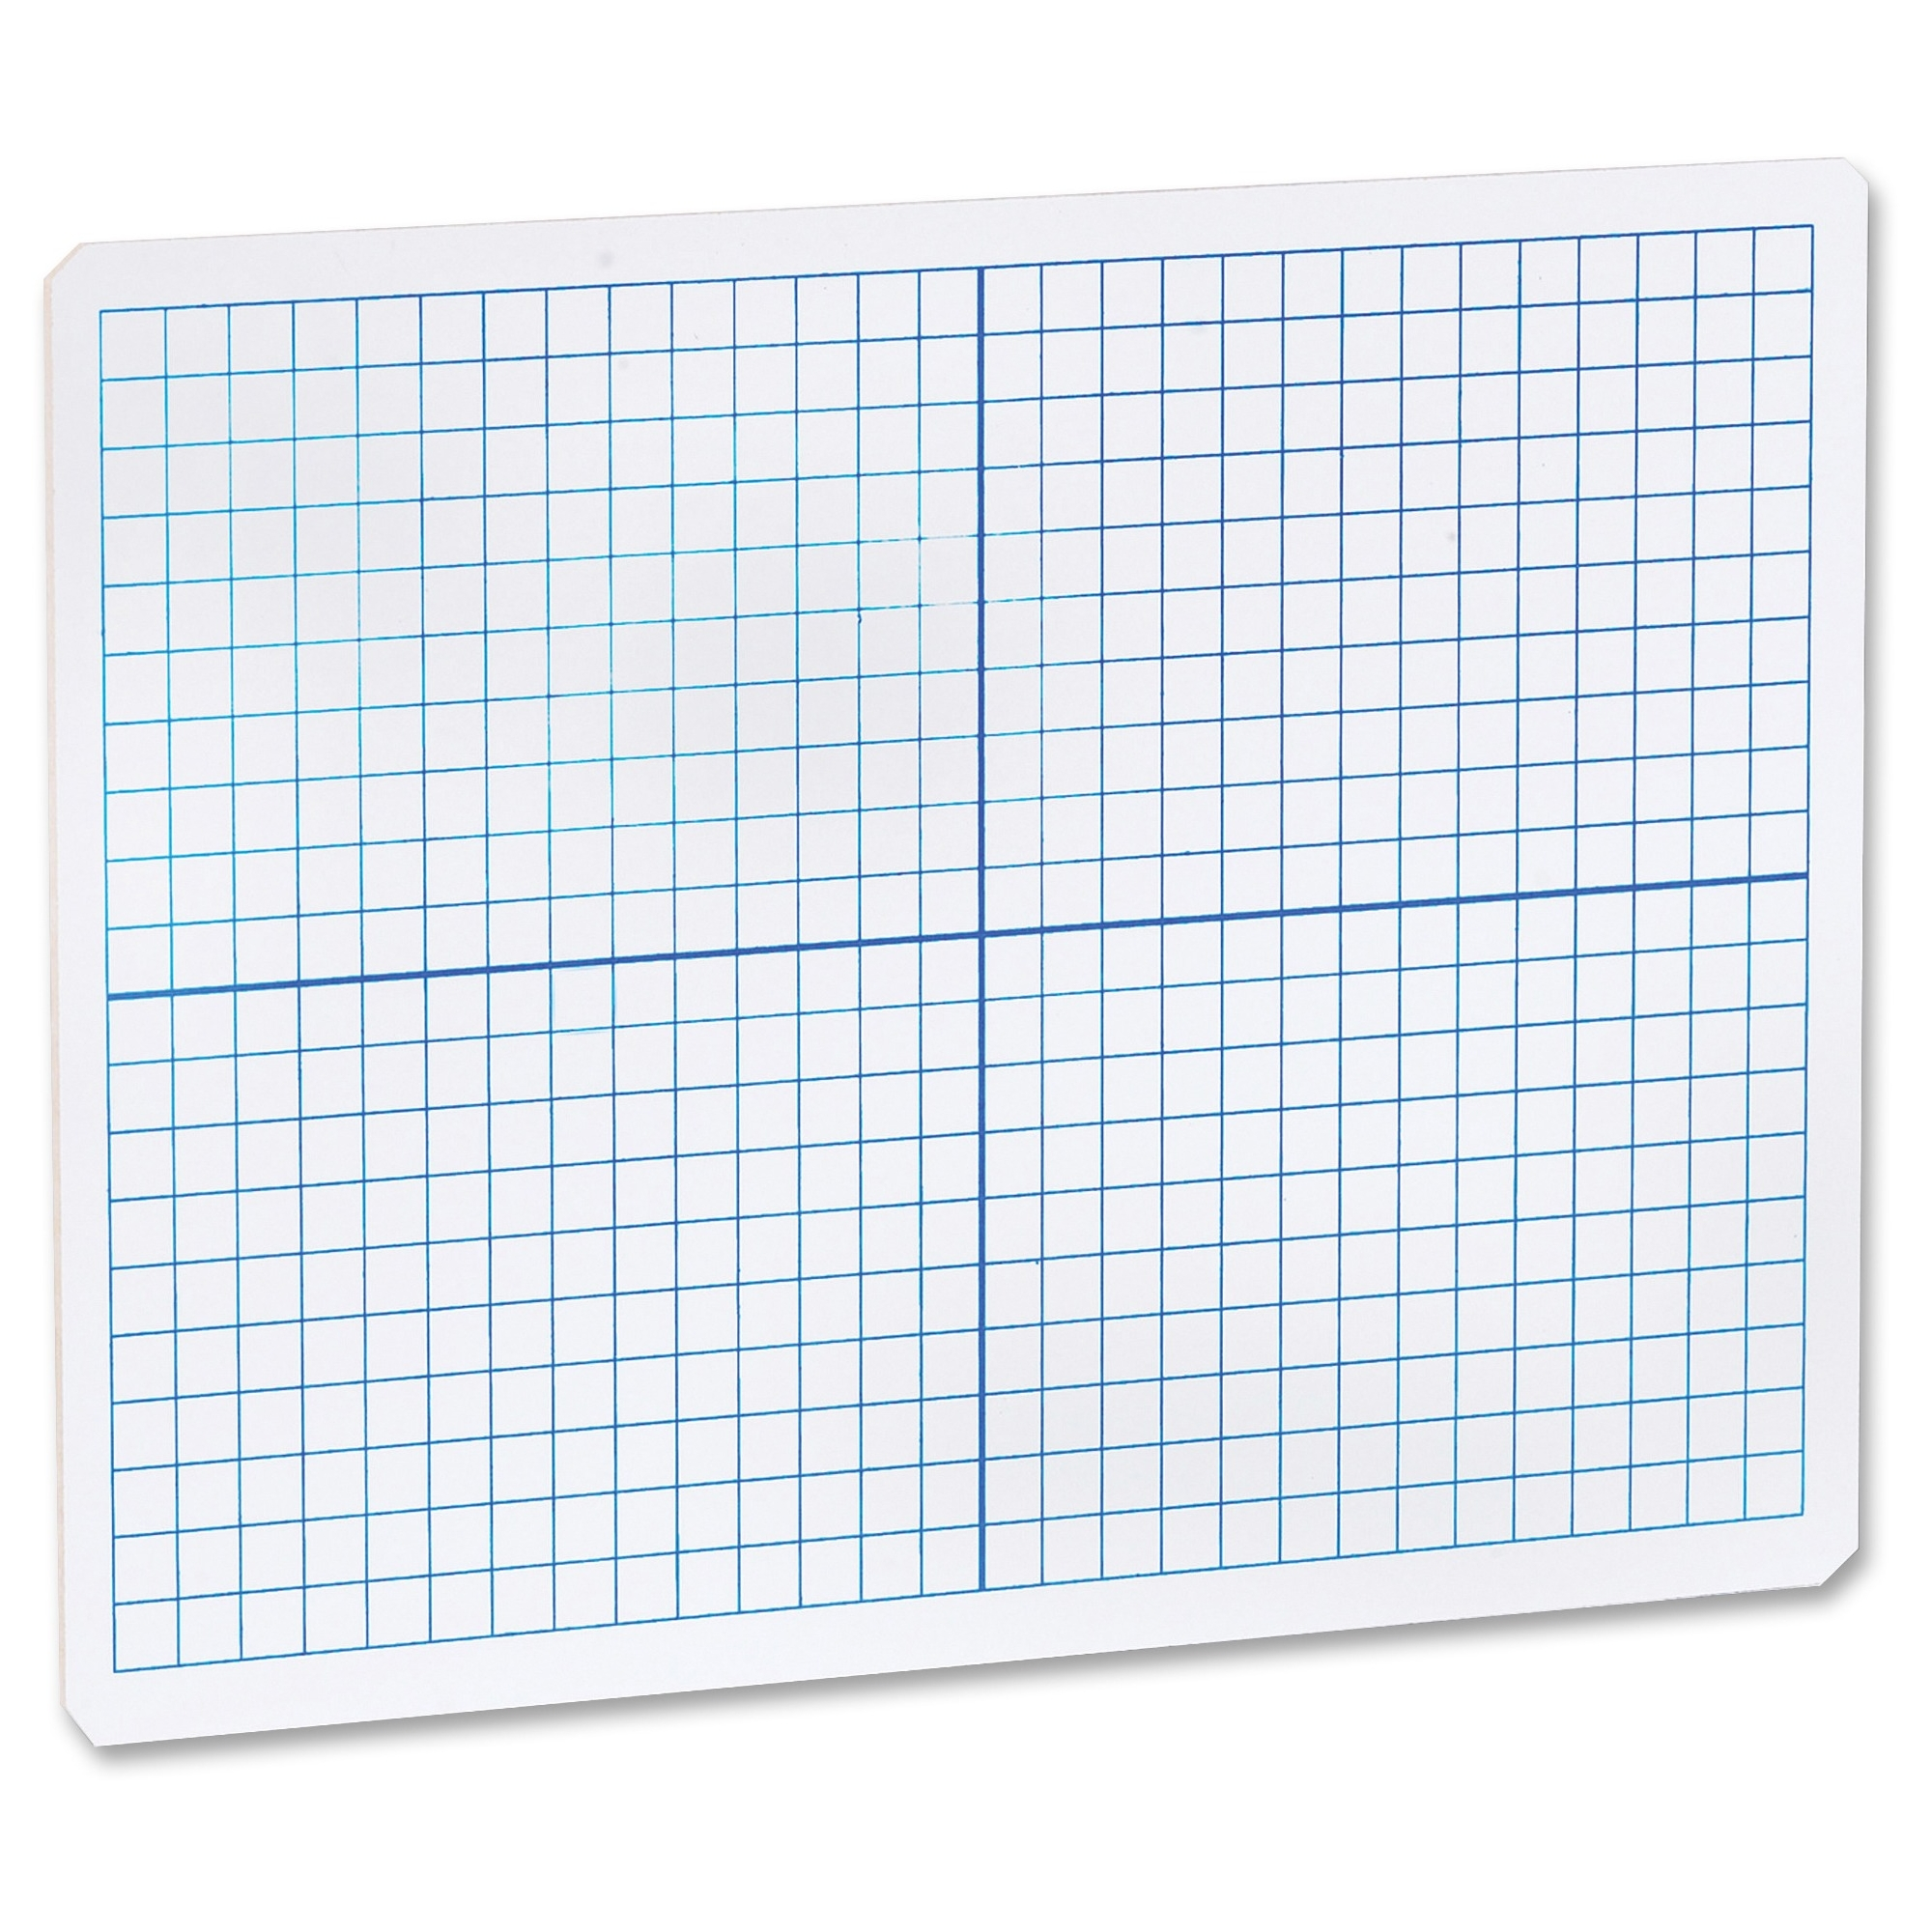 "Flipside Grid/plain 2side Dryerase Lap Board - 12"" [1 Ft] Width X 9"" [0.8 Ft] Height - White Surface - Rectangle - Portable - 1 Each (flp-11000)"